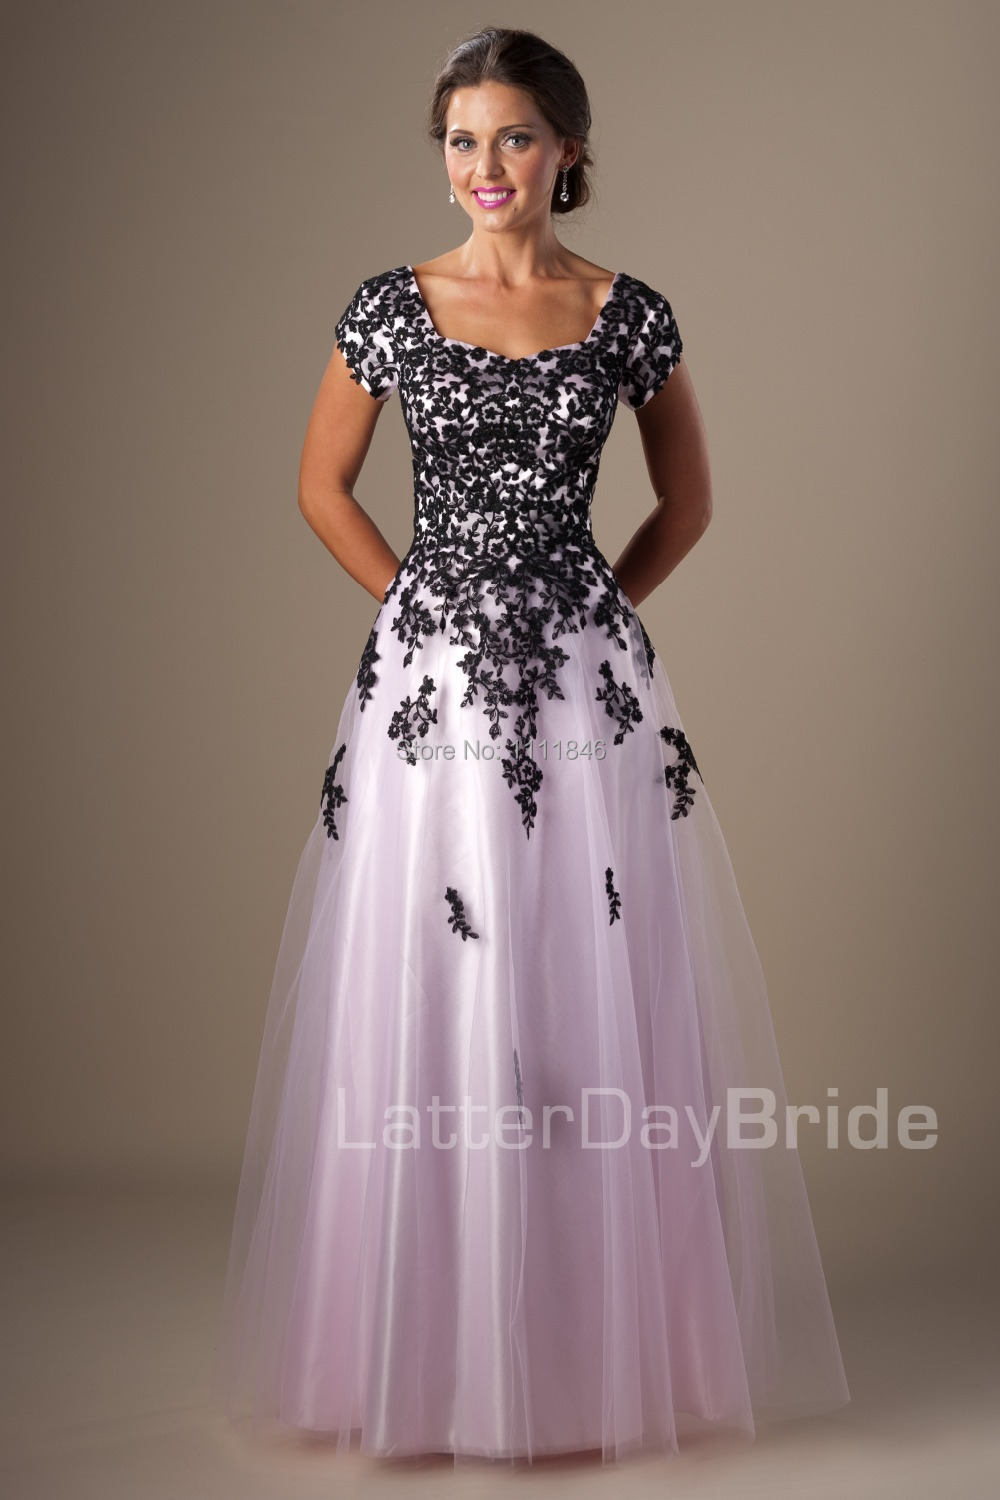 Black and White Modest Prom Dresses with Sleeves